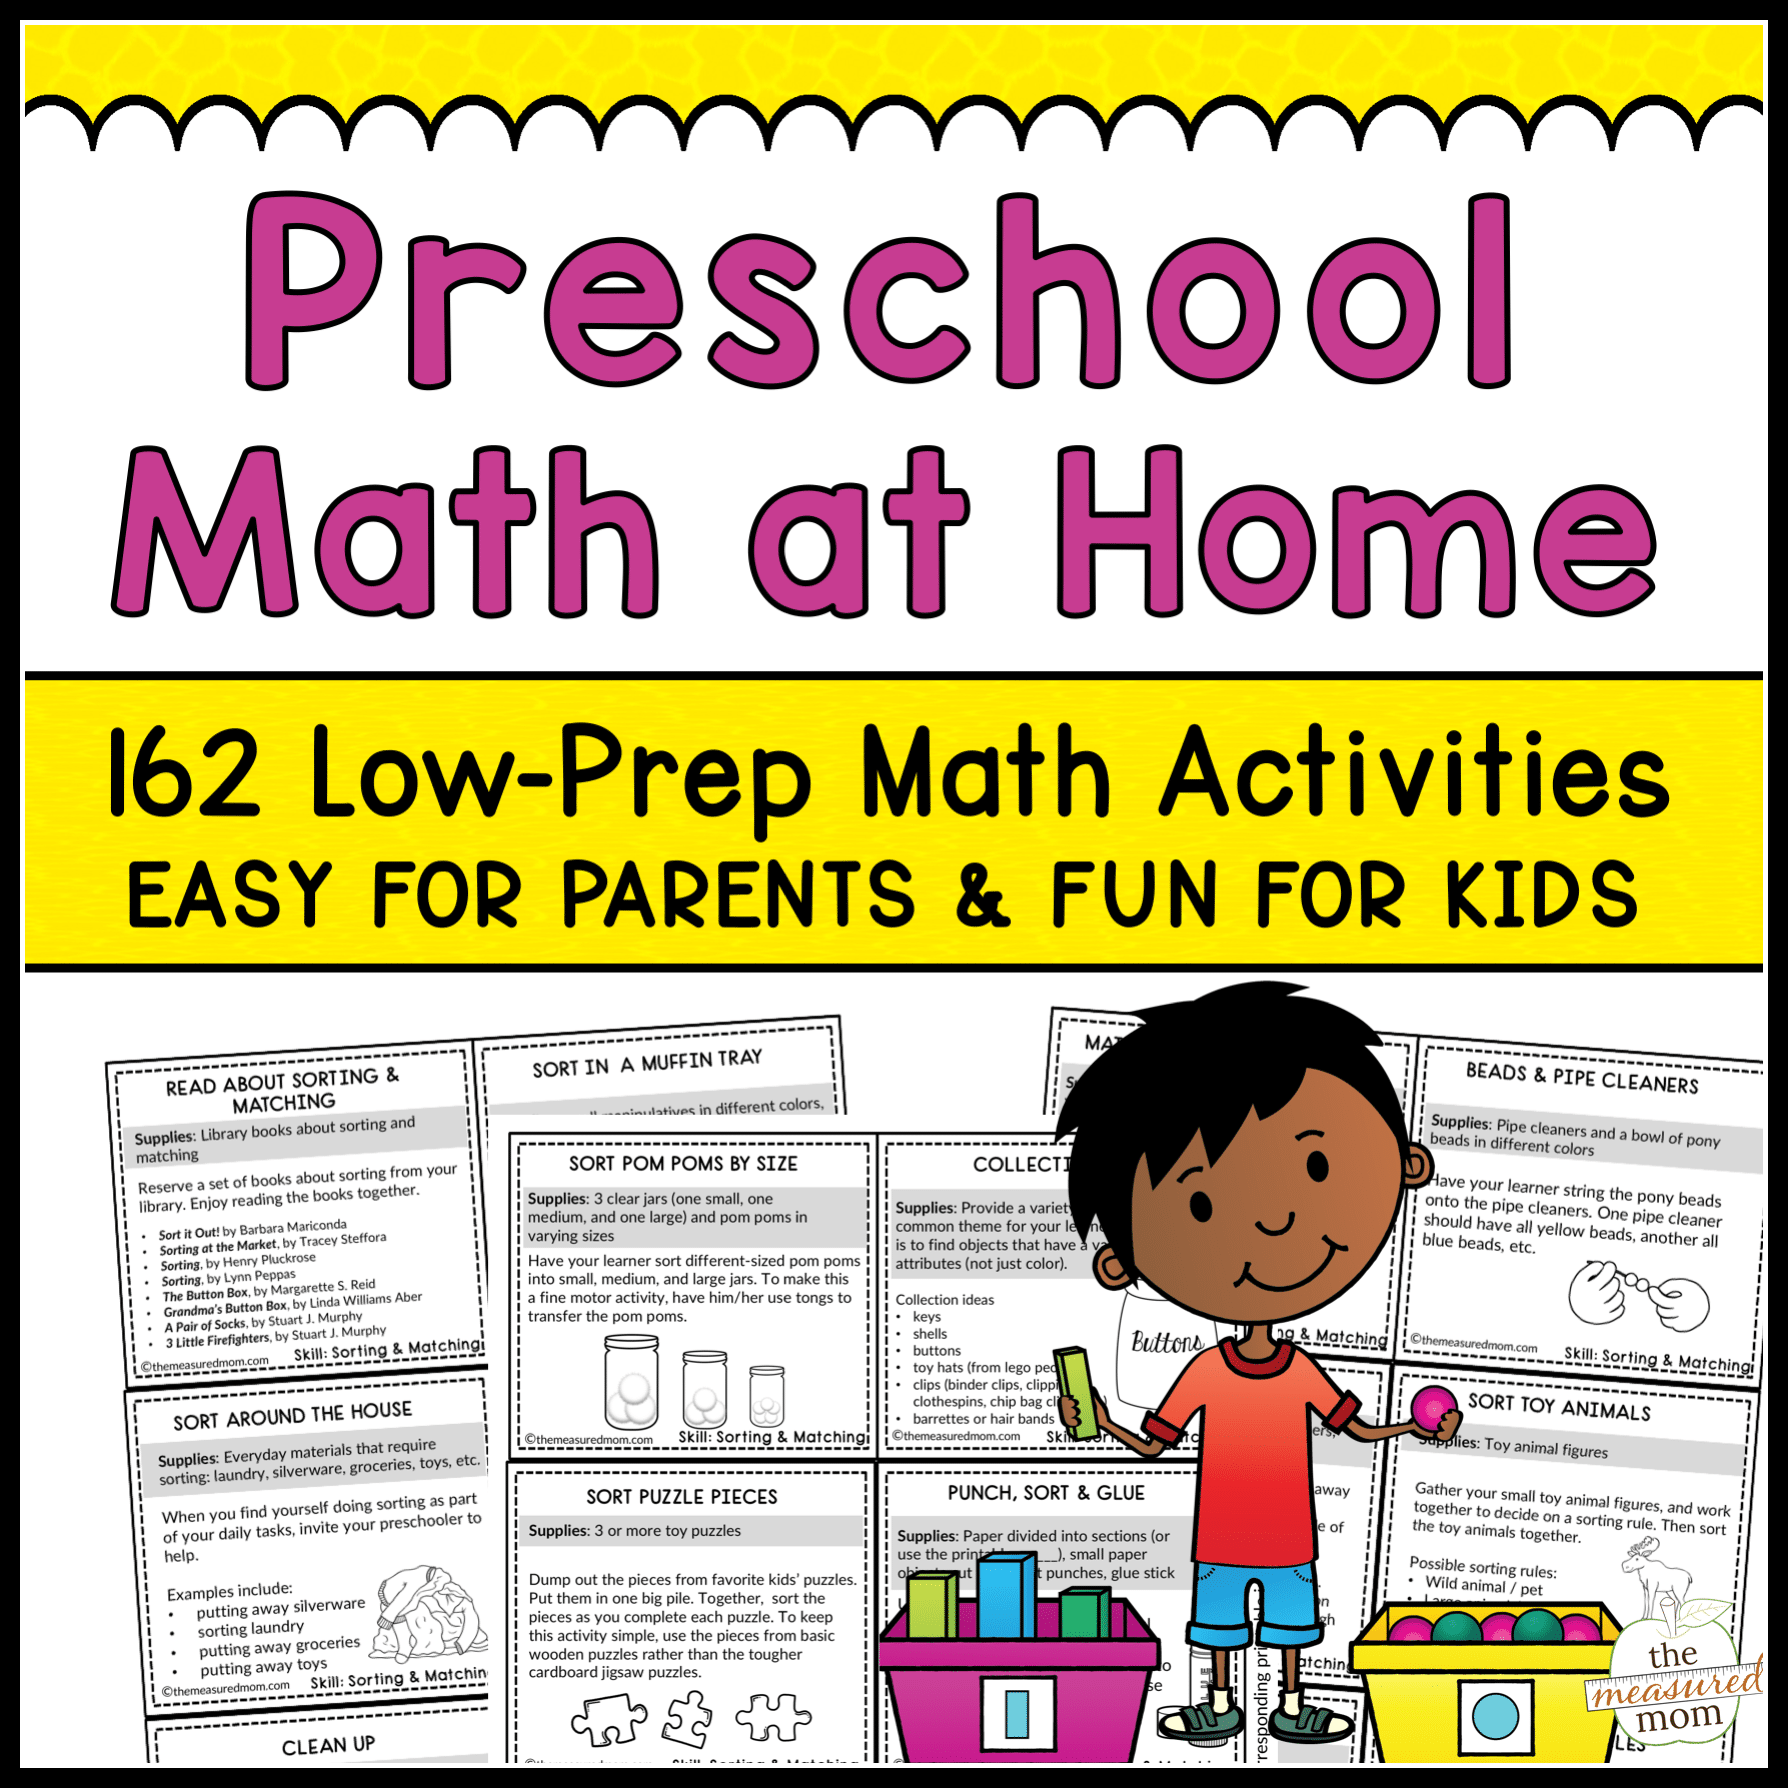 Preschool Math Curriculum for Home - Special Offer - The ...